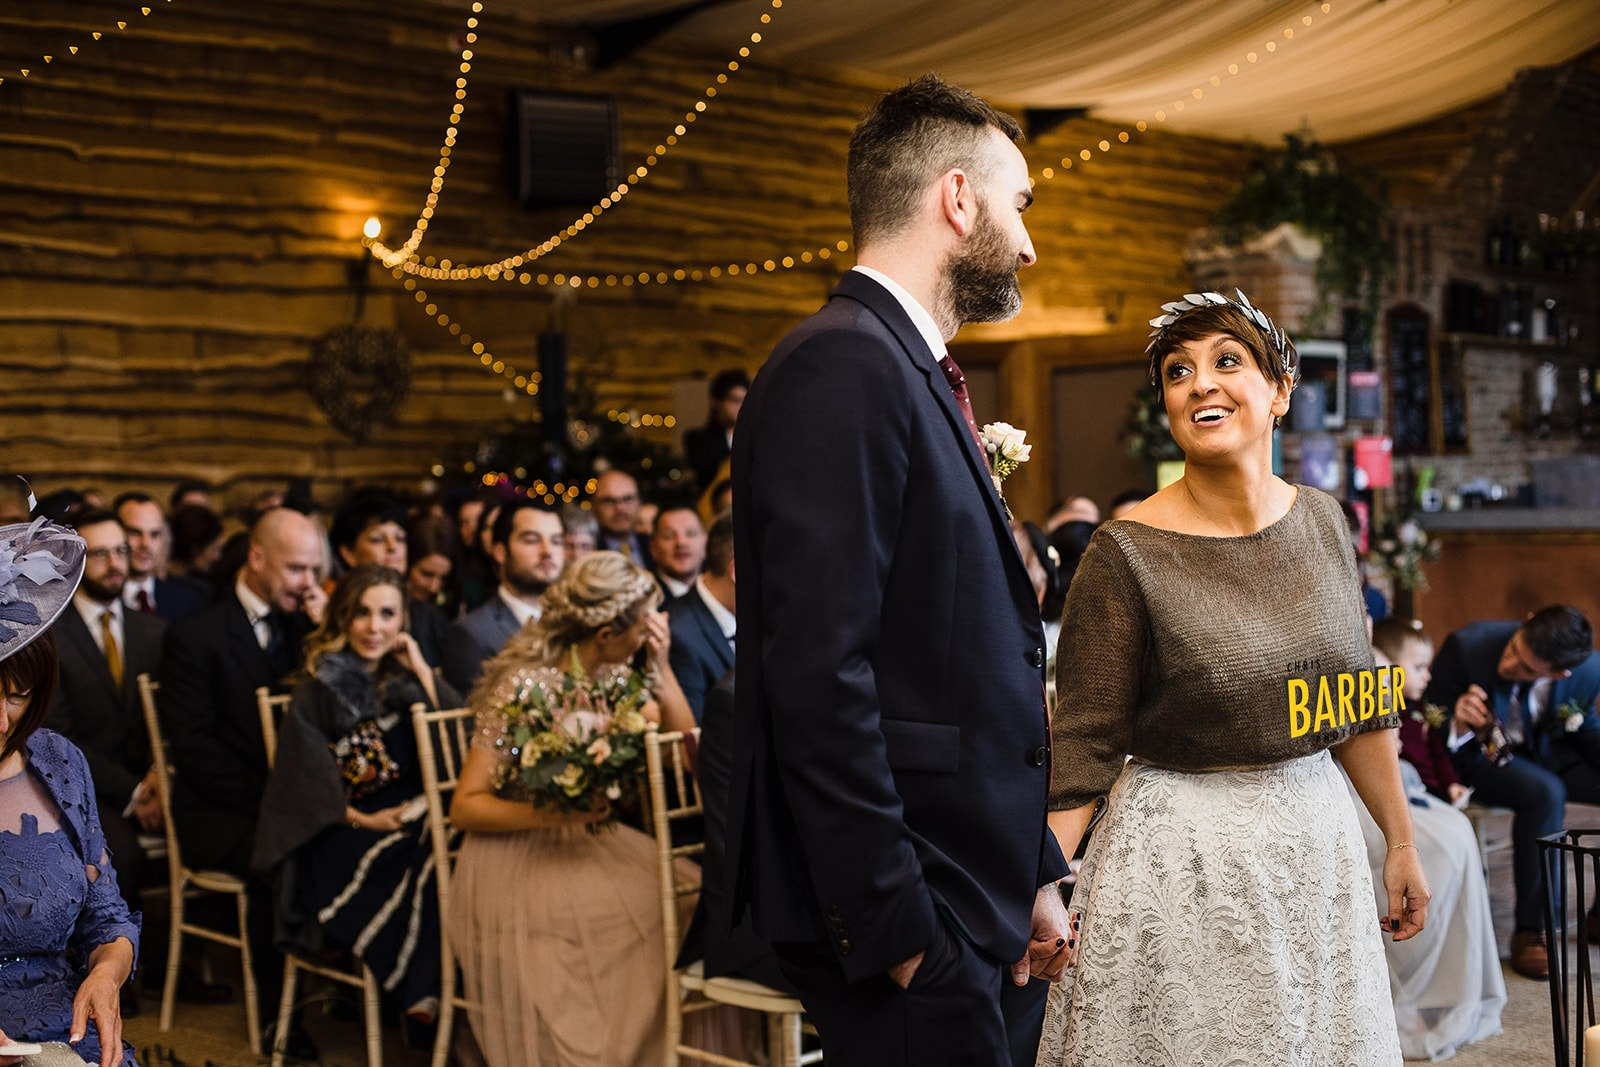 Maggie's reading to her daughter and new Son-in-Law was her version of 'We  Go Together' from Grease, which was fabulously funny and awe inspiring as  she ...